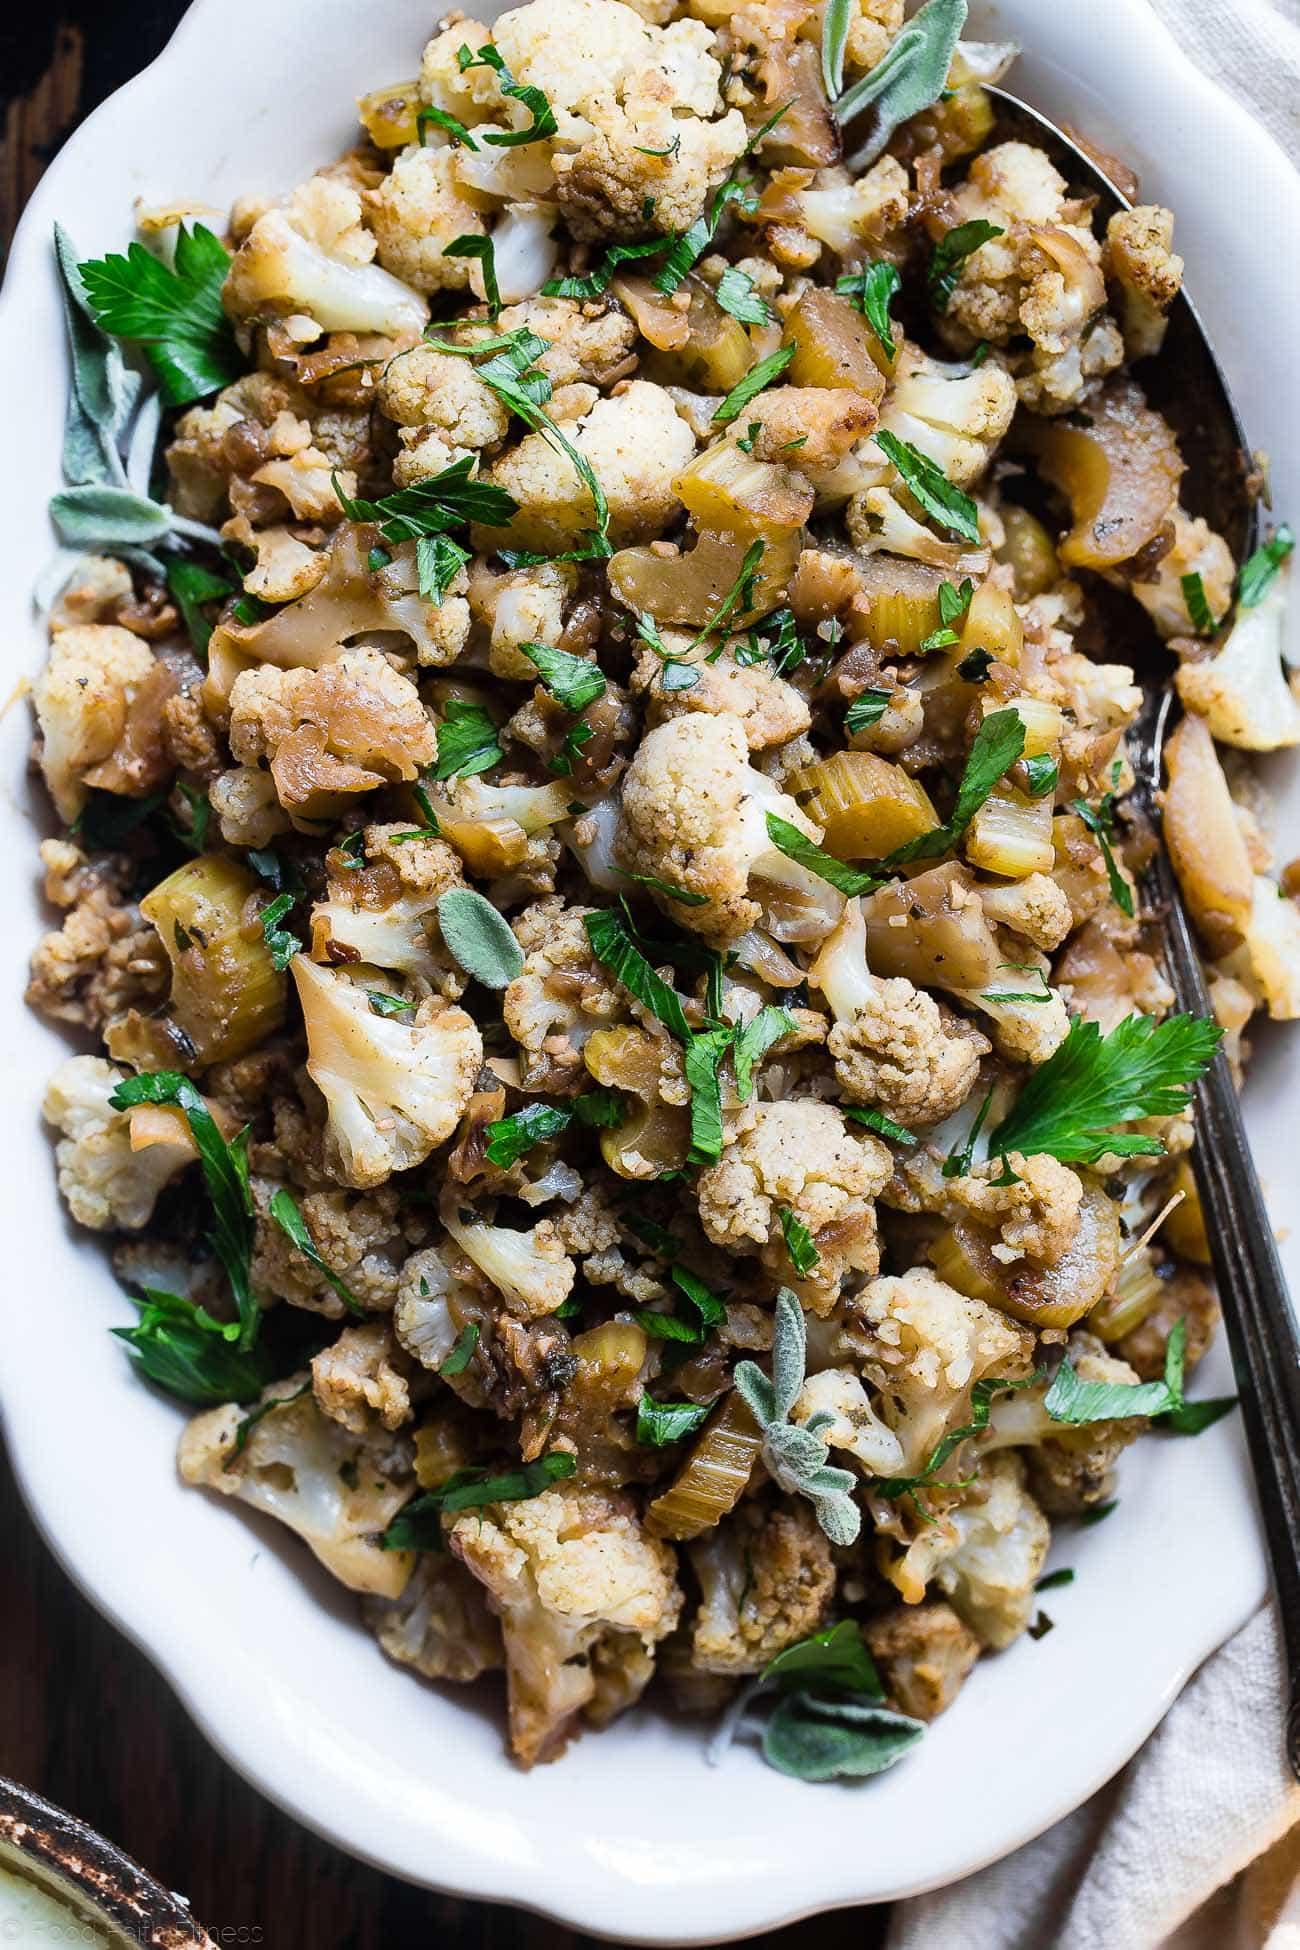 Low Carb Cauliflower Stuffing - This low carb stuffing recipe is made entirely from vegetables but has all the flavor of traditional bread stuffing! It's super easy, whole30 compliant, paleo, vegan, gluten free and SO delicious! Perfect for Thanksgiving or Christmas! | Foodfaithfitness.com | @FoodFaithFit